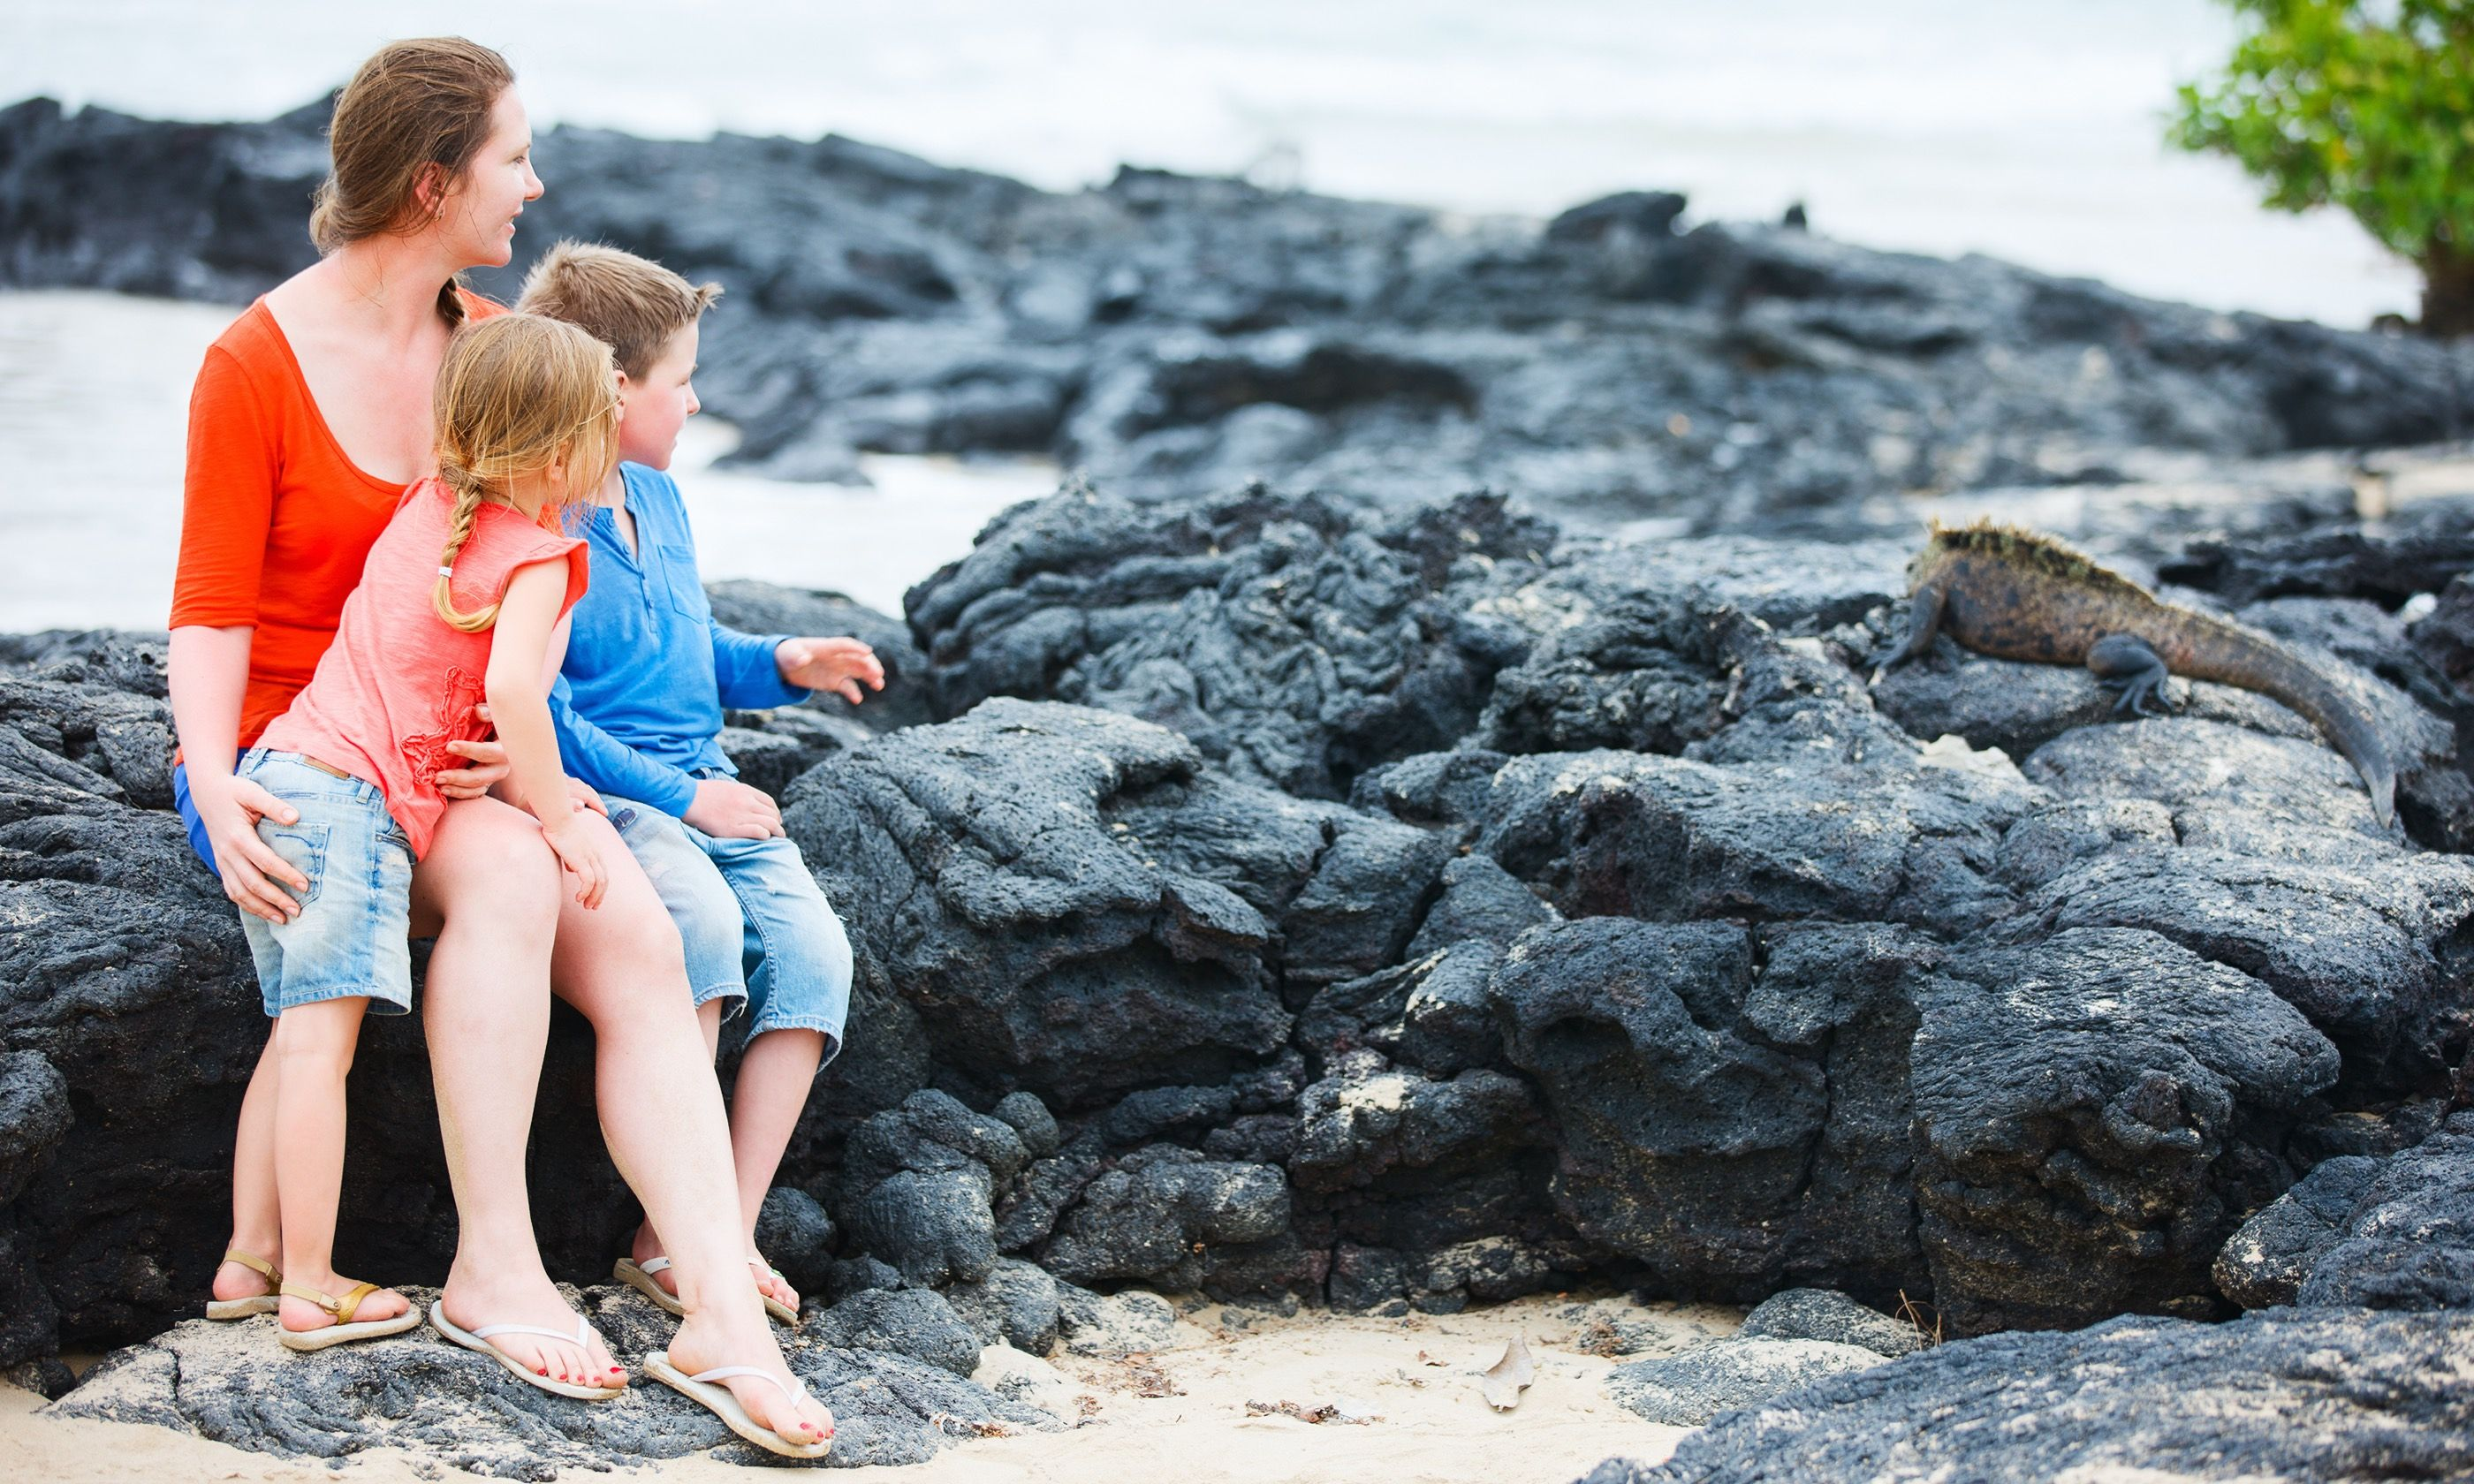 A family comes face to face with a marine Iguana (Shutterstock.com)